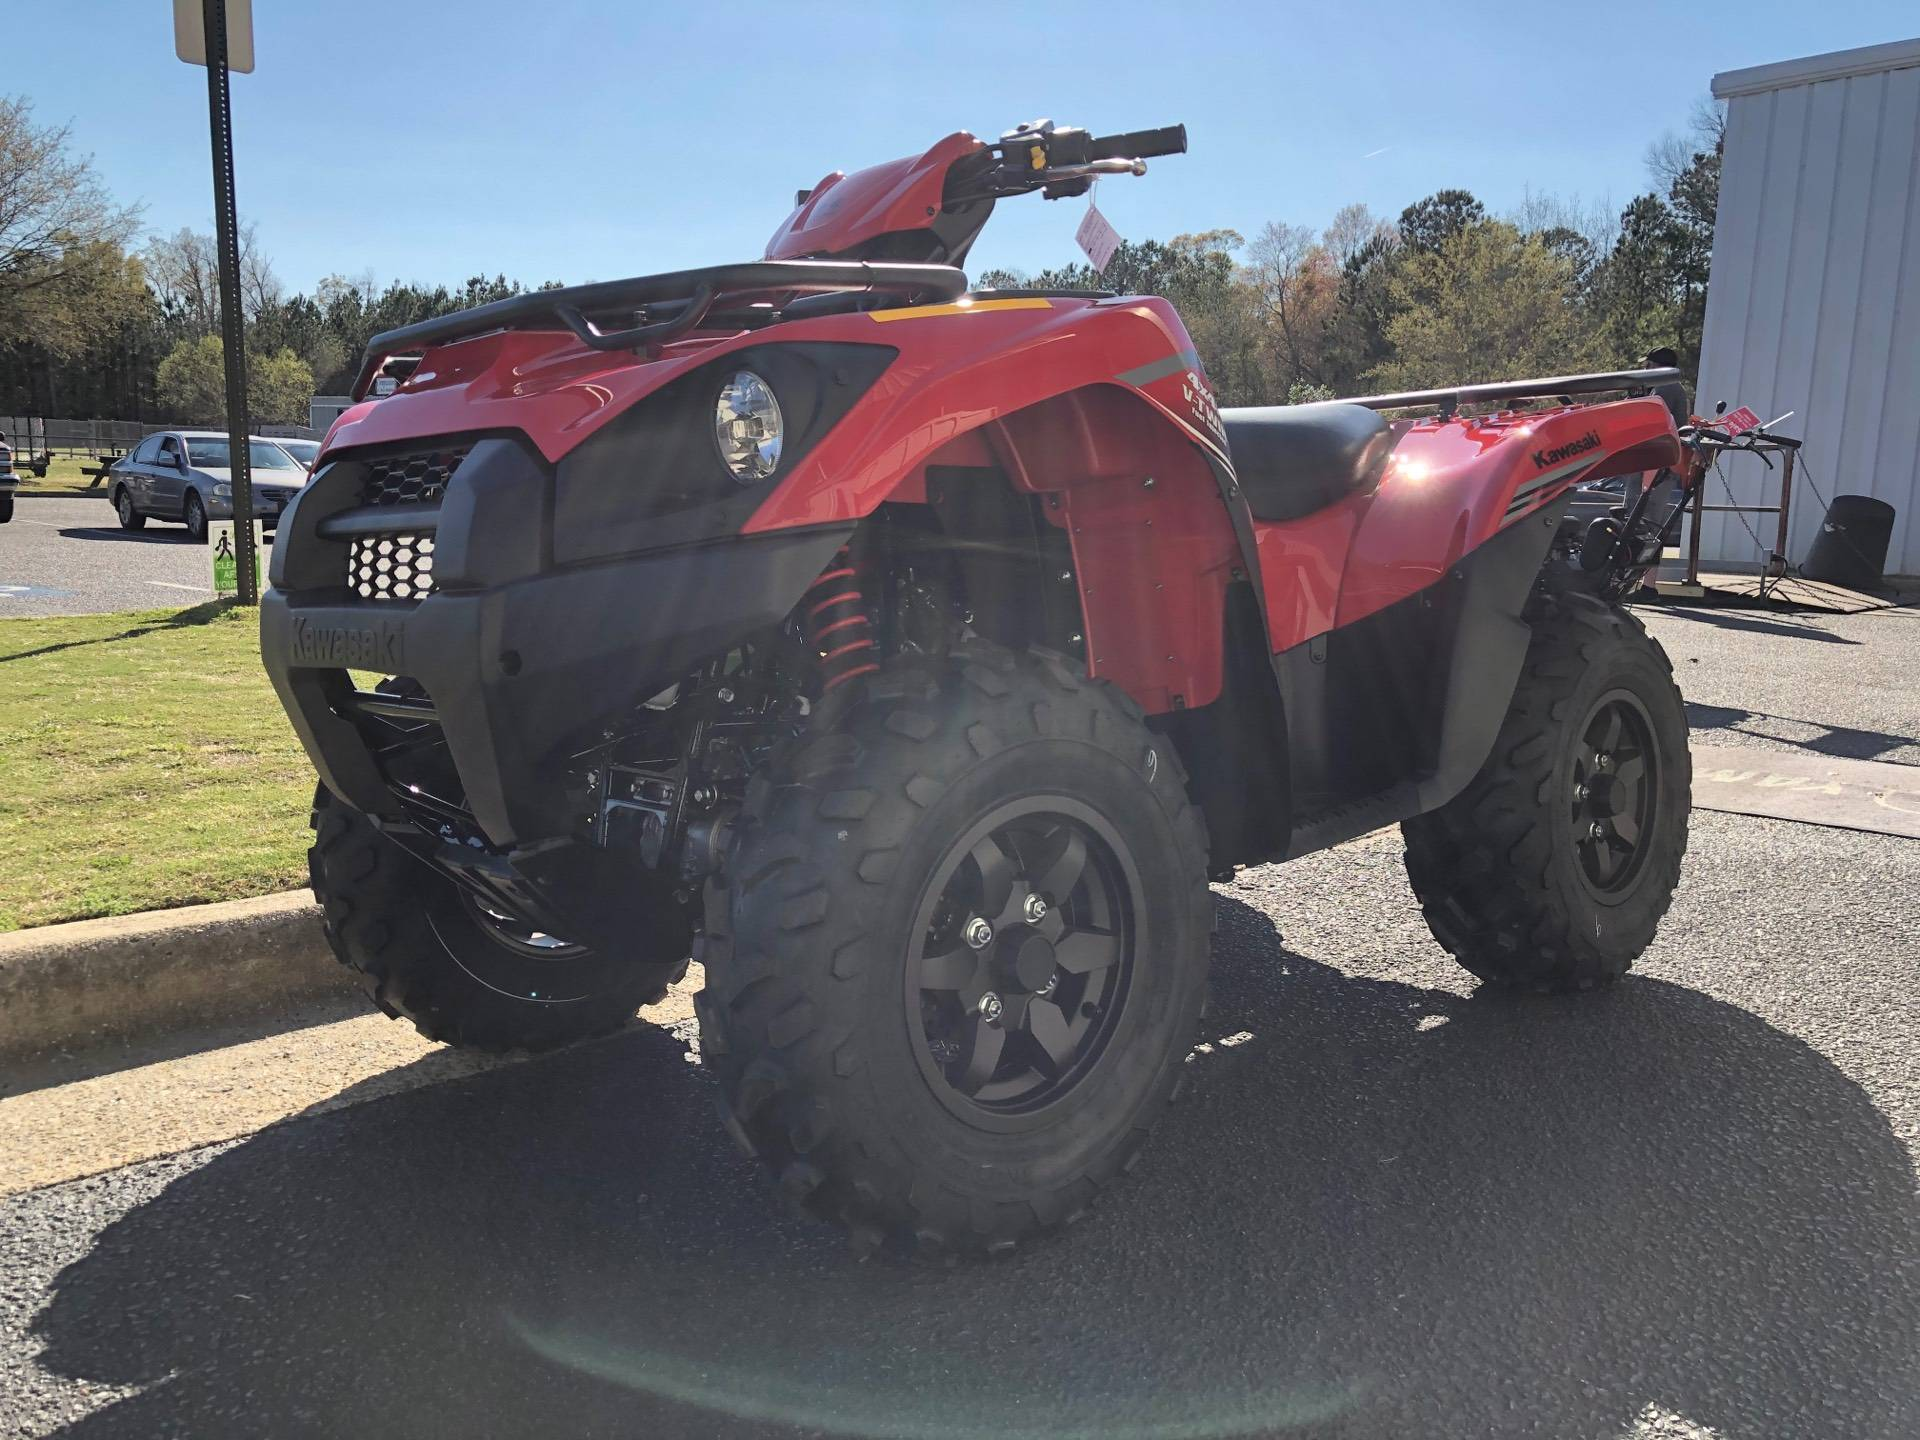 2021 Kawasaki Brute Force 750 4x4i in Greenville, North Carolina - Photo 5